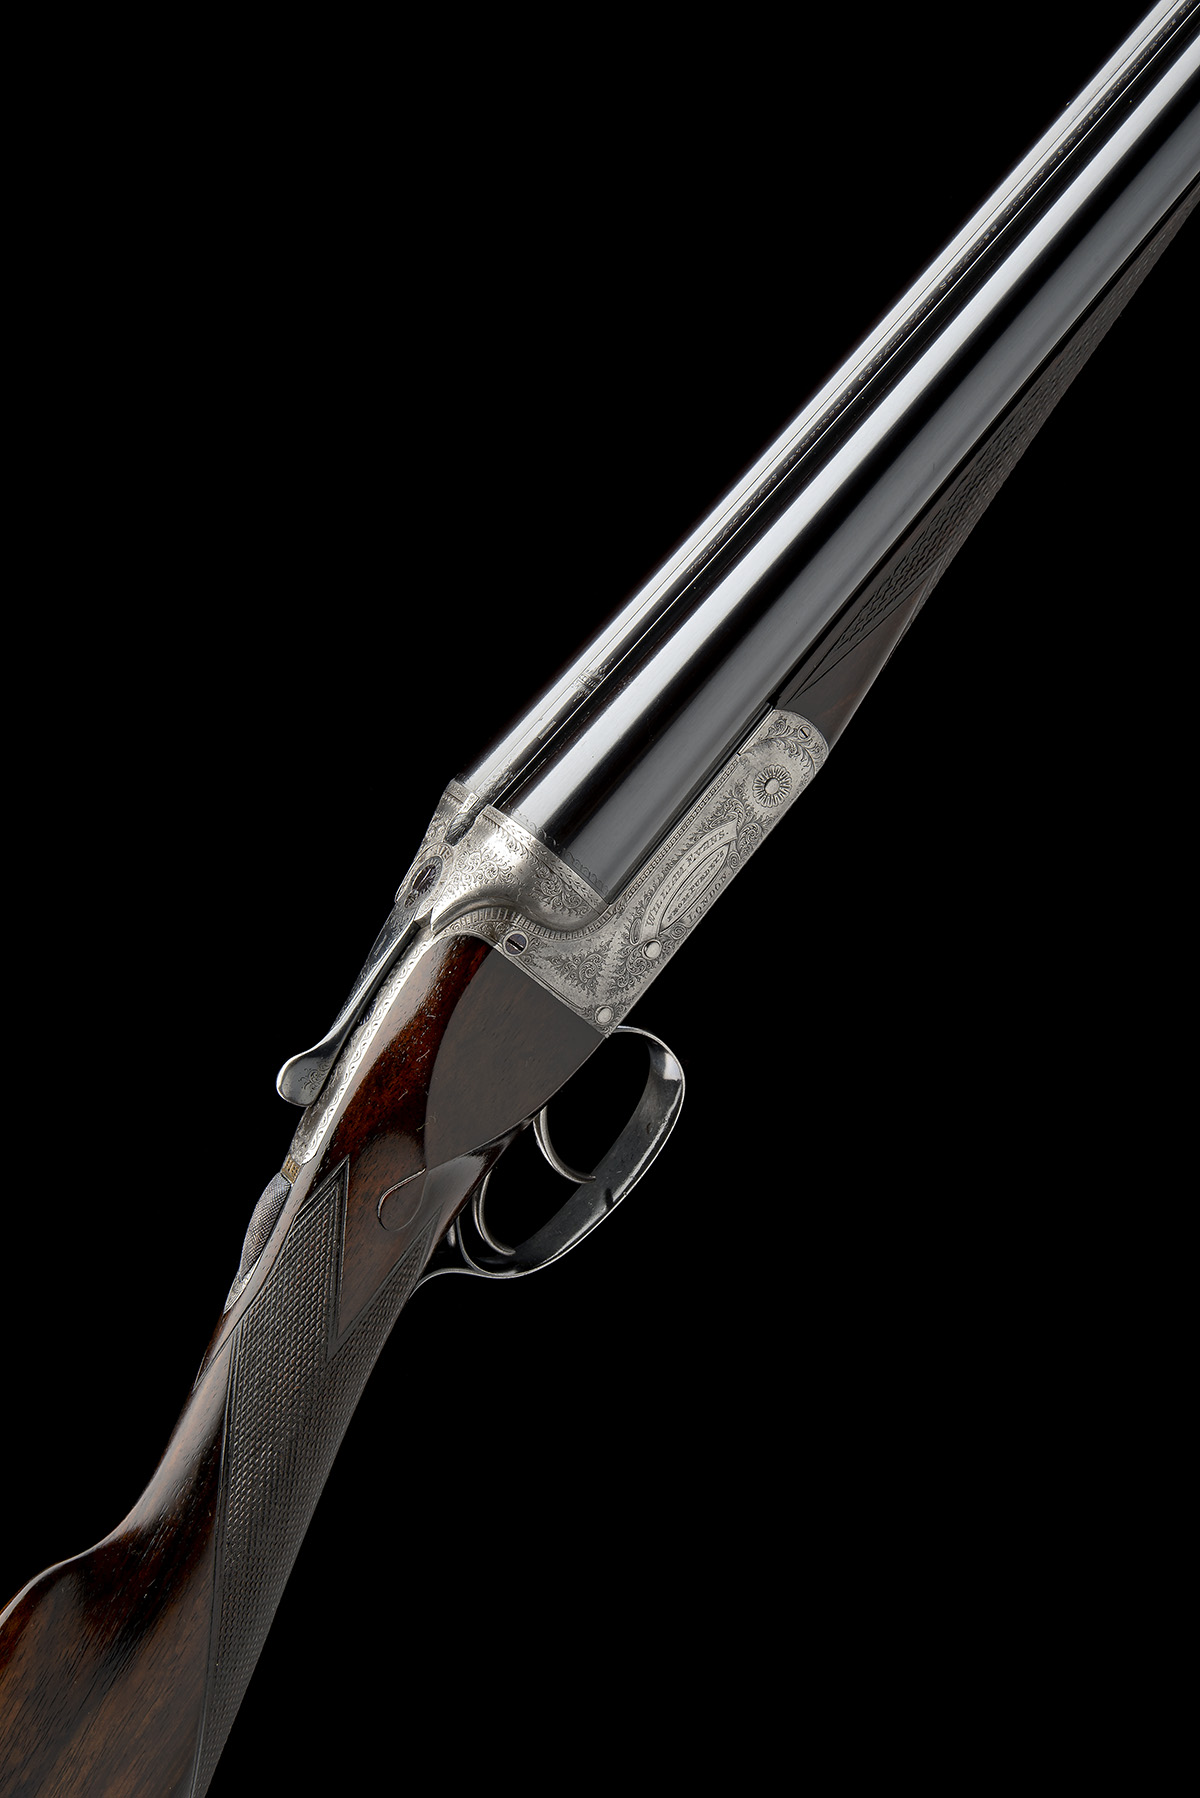 WILLIAM EVANS (FROM PURDEY'S) A 12-BORE BOXLOCK EJECTOR, serial no. 3733, for 1897, 30in.